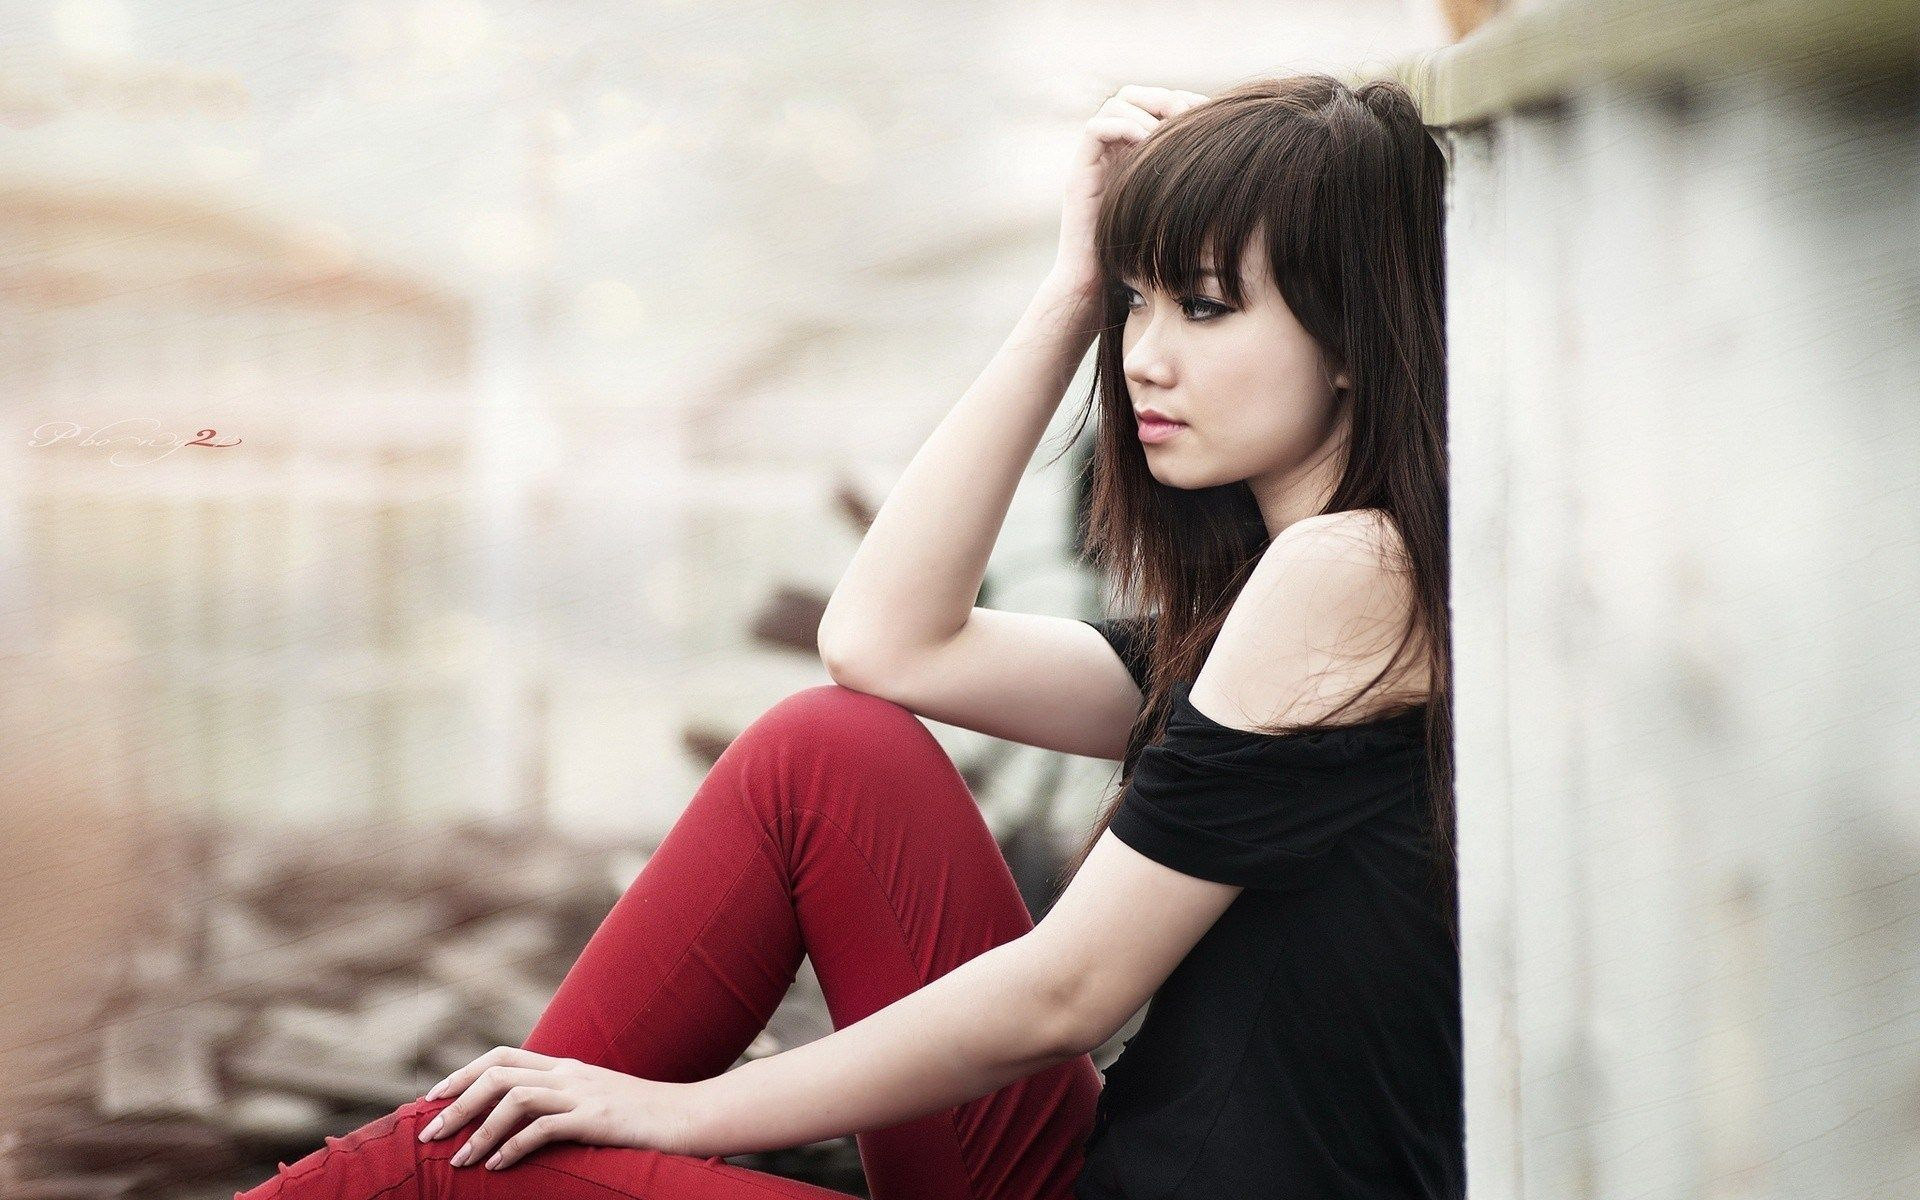 Asian Girl Wallpapers Top Free Asian Girl Backgrounds